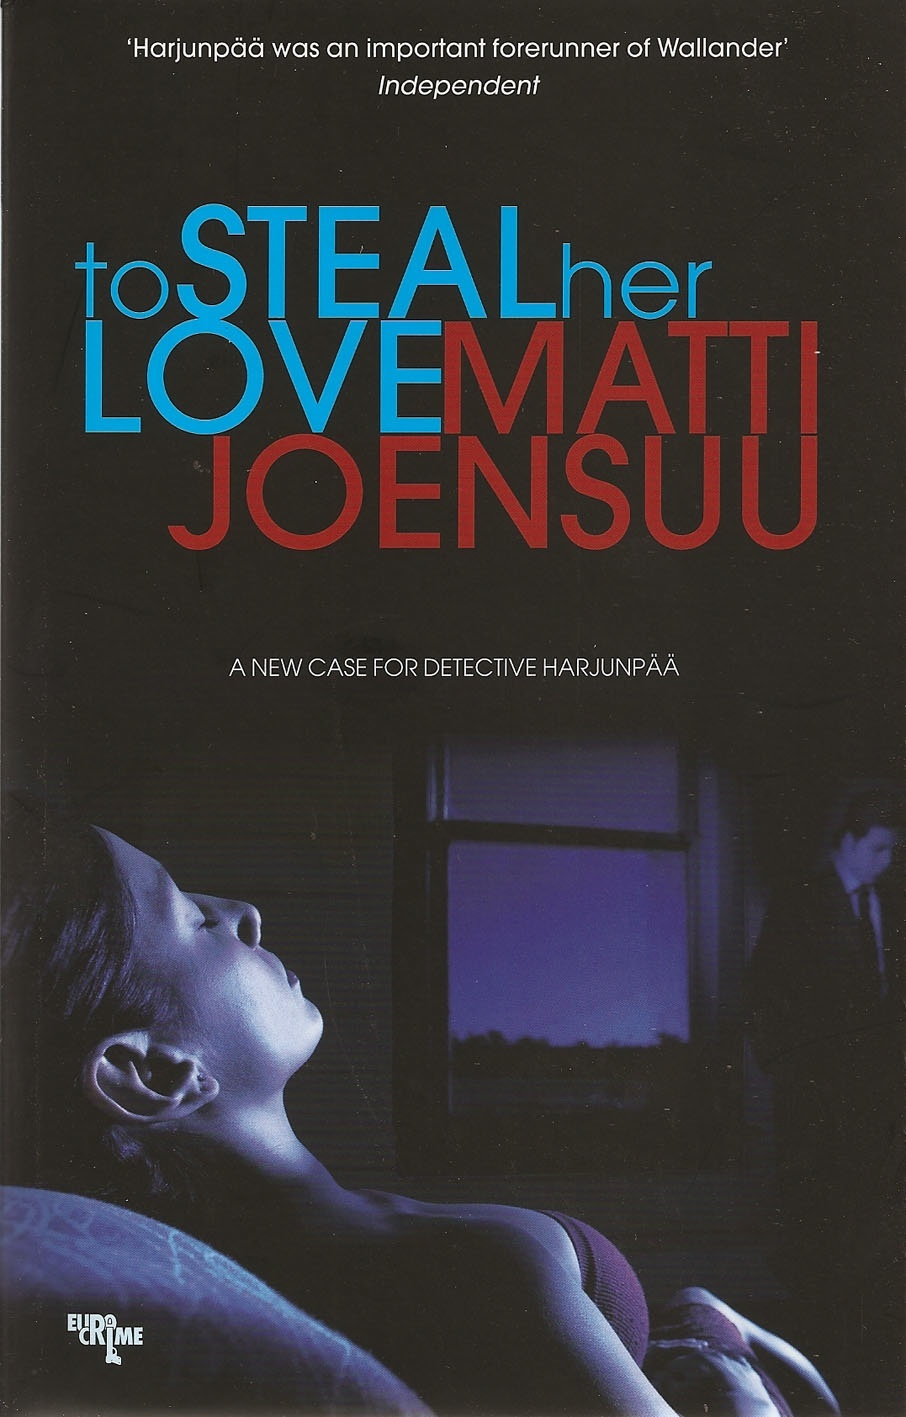 To Steal Her Love By: Matti Joensuu